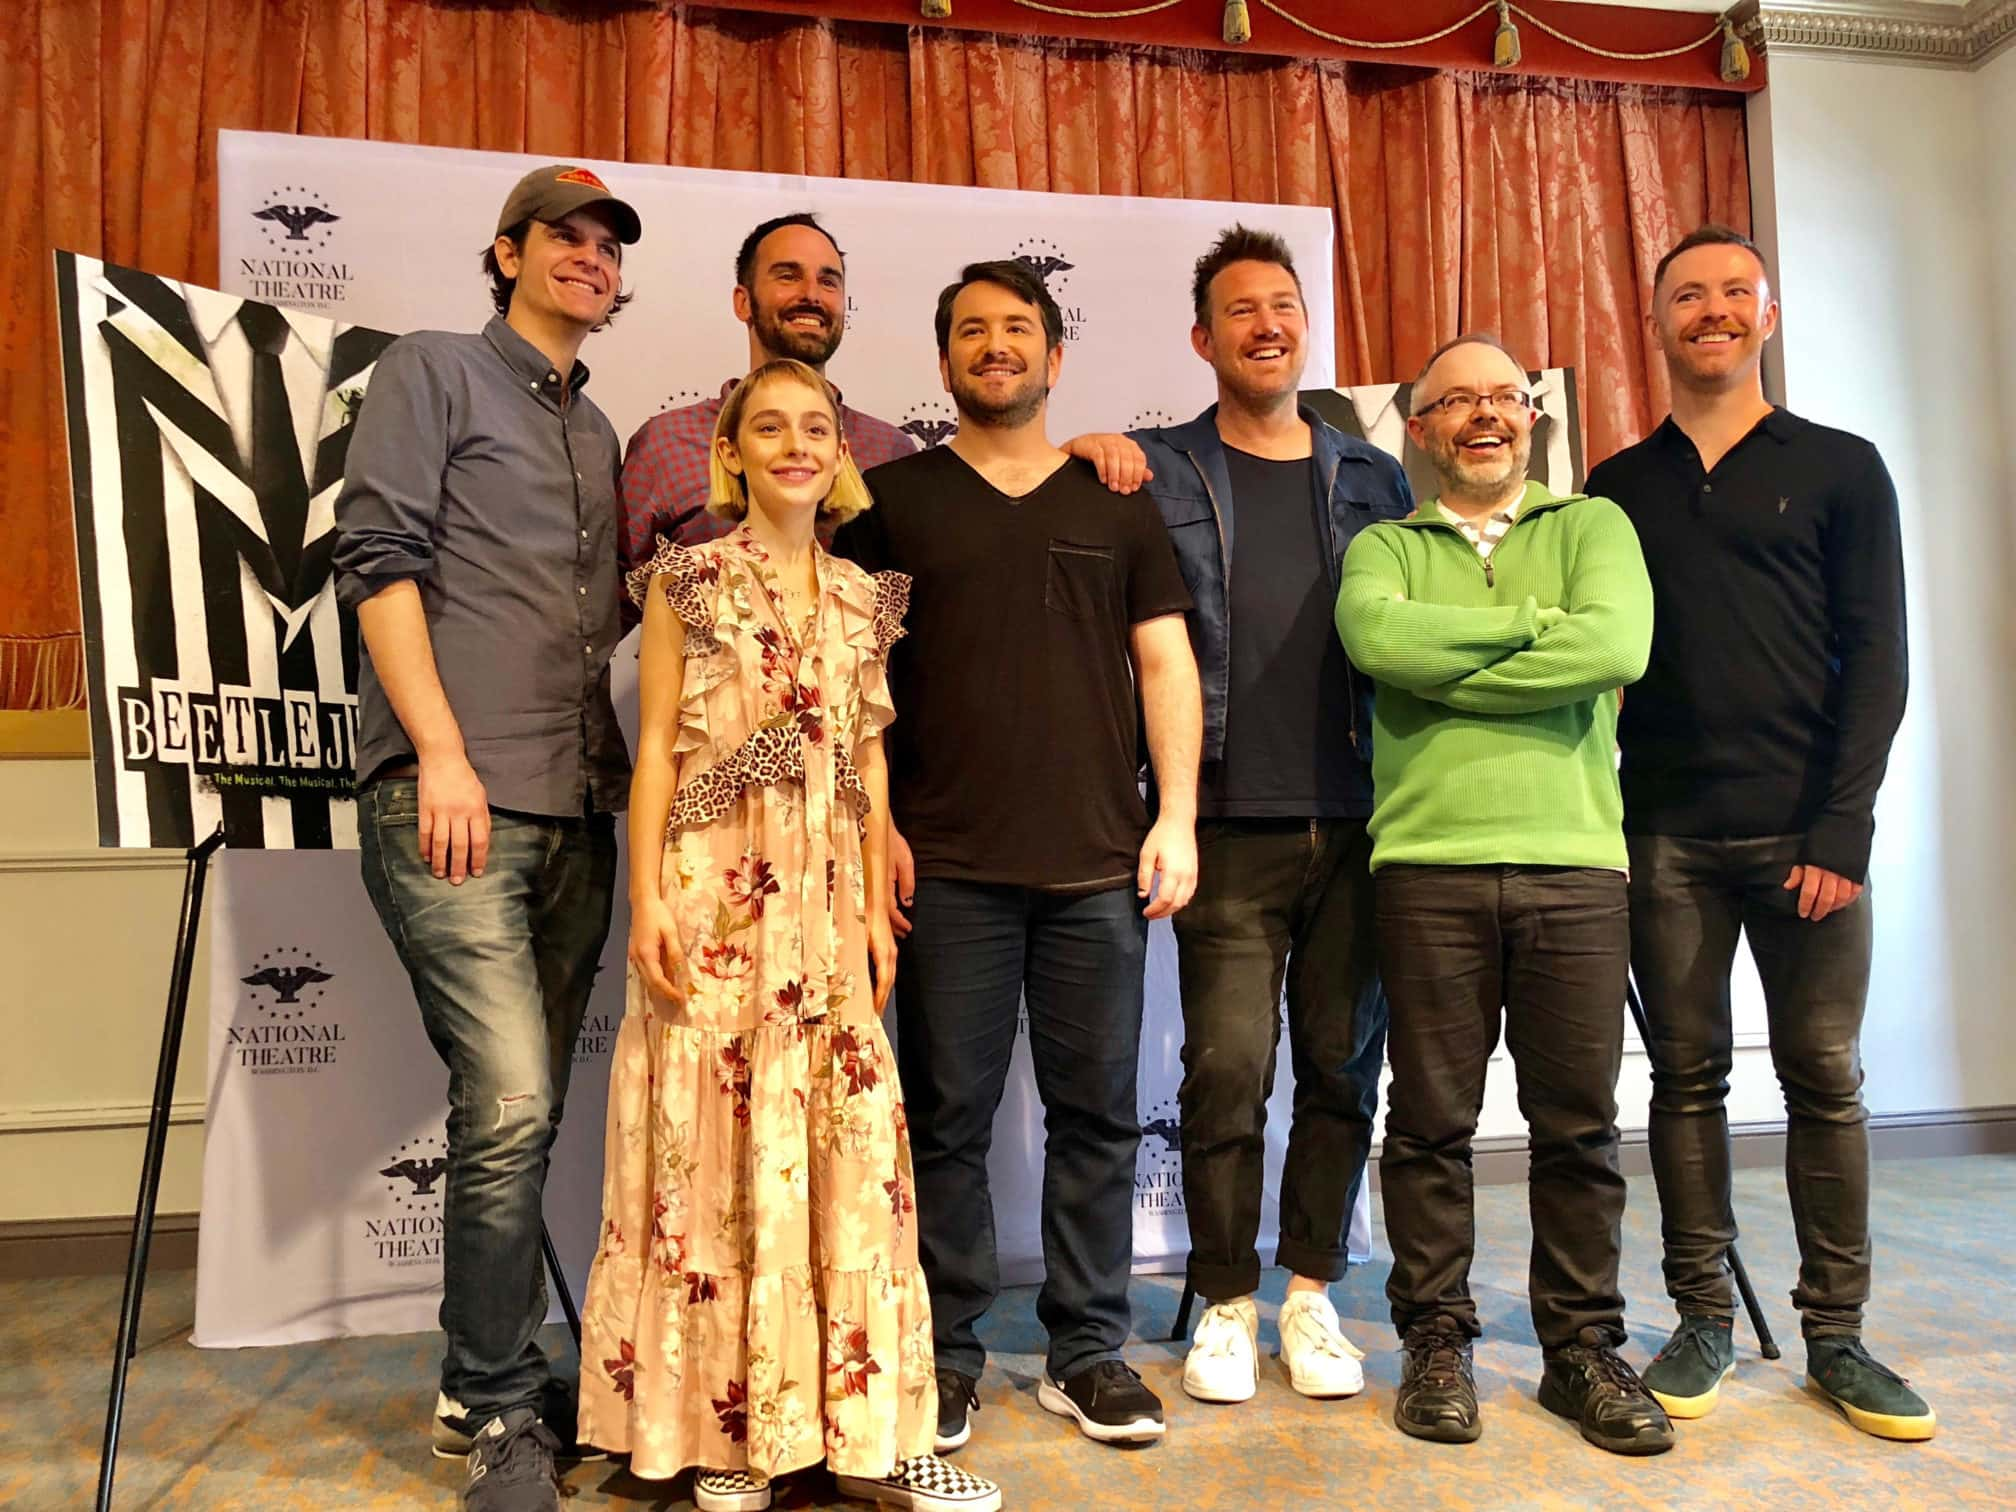 'Beetlejuice' creative team at the National Theatre: L-R Alex Timbers (Director), Sophia Anne Caruso (Lydia), Anthony King (book writer), Alex Brightman (Beetlejuice), Eddie Perfect (Composer and Lyricist), Scott Brown (book writer), Connor Gallagher. Photo by Nicole Hertvik.